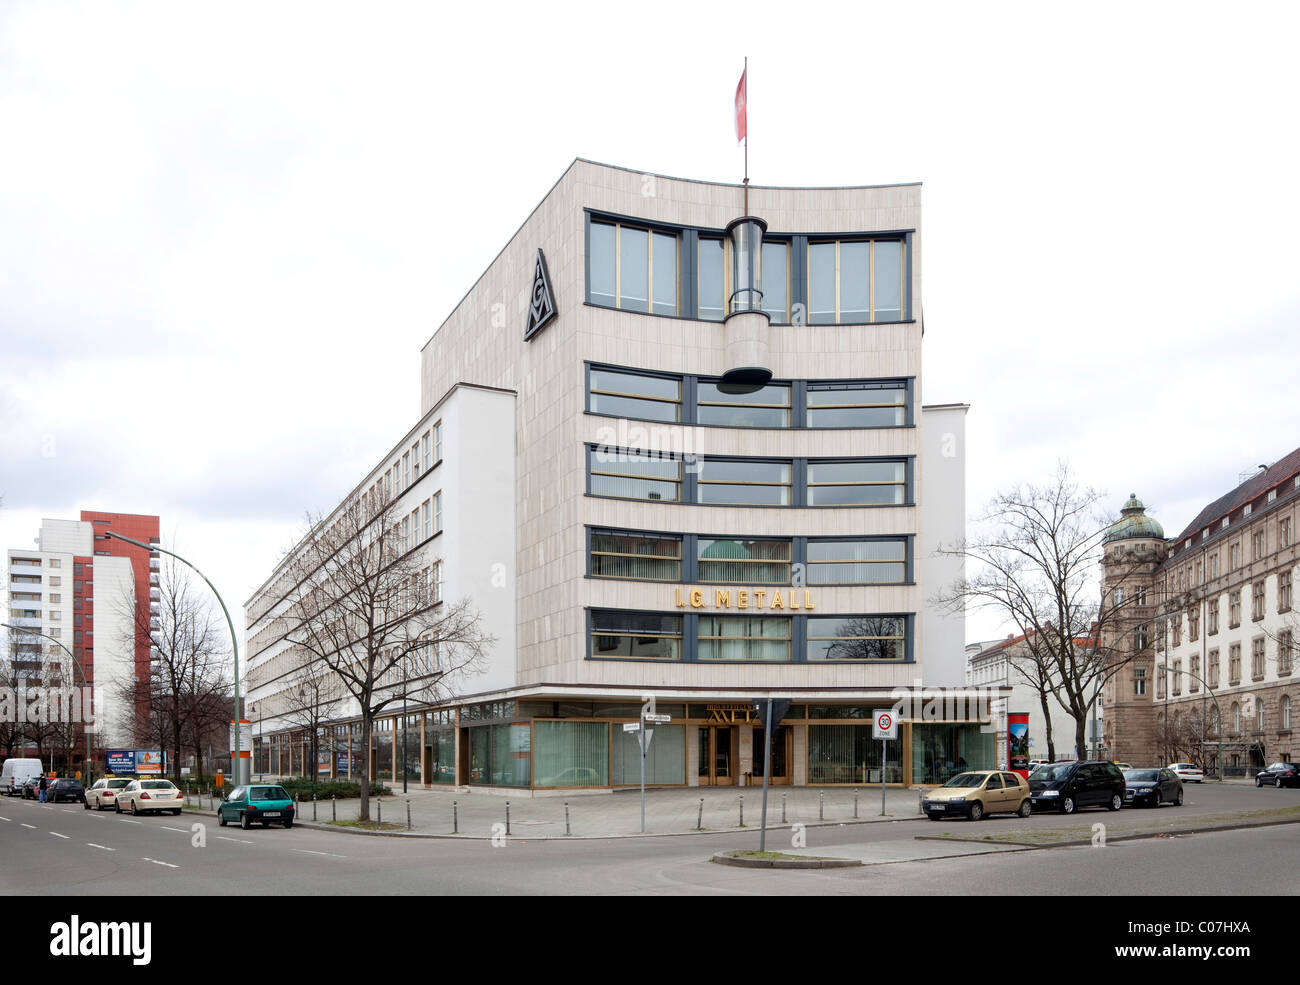 House of the German Metalworkers' Federation, IG Metall, trade union headquarters, Kreuzberg, Berlin, Germany, - Stock Image